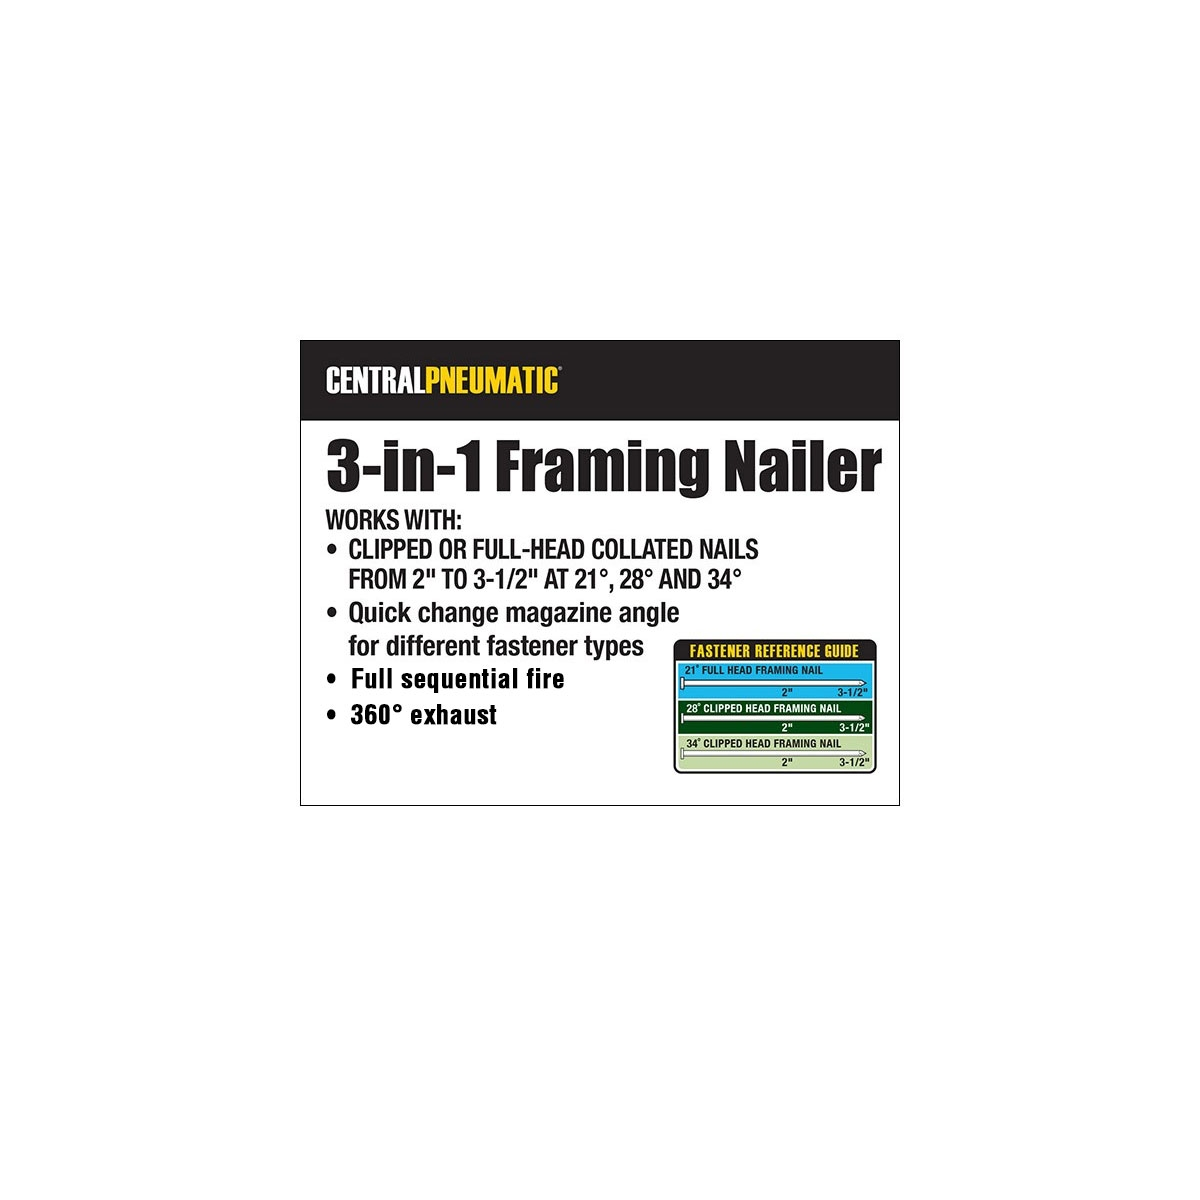 3-in-1 Air Framing Nailer - 10 Gauge